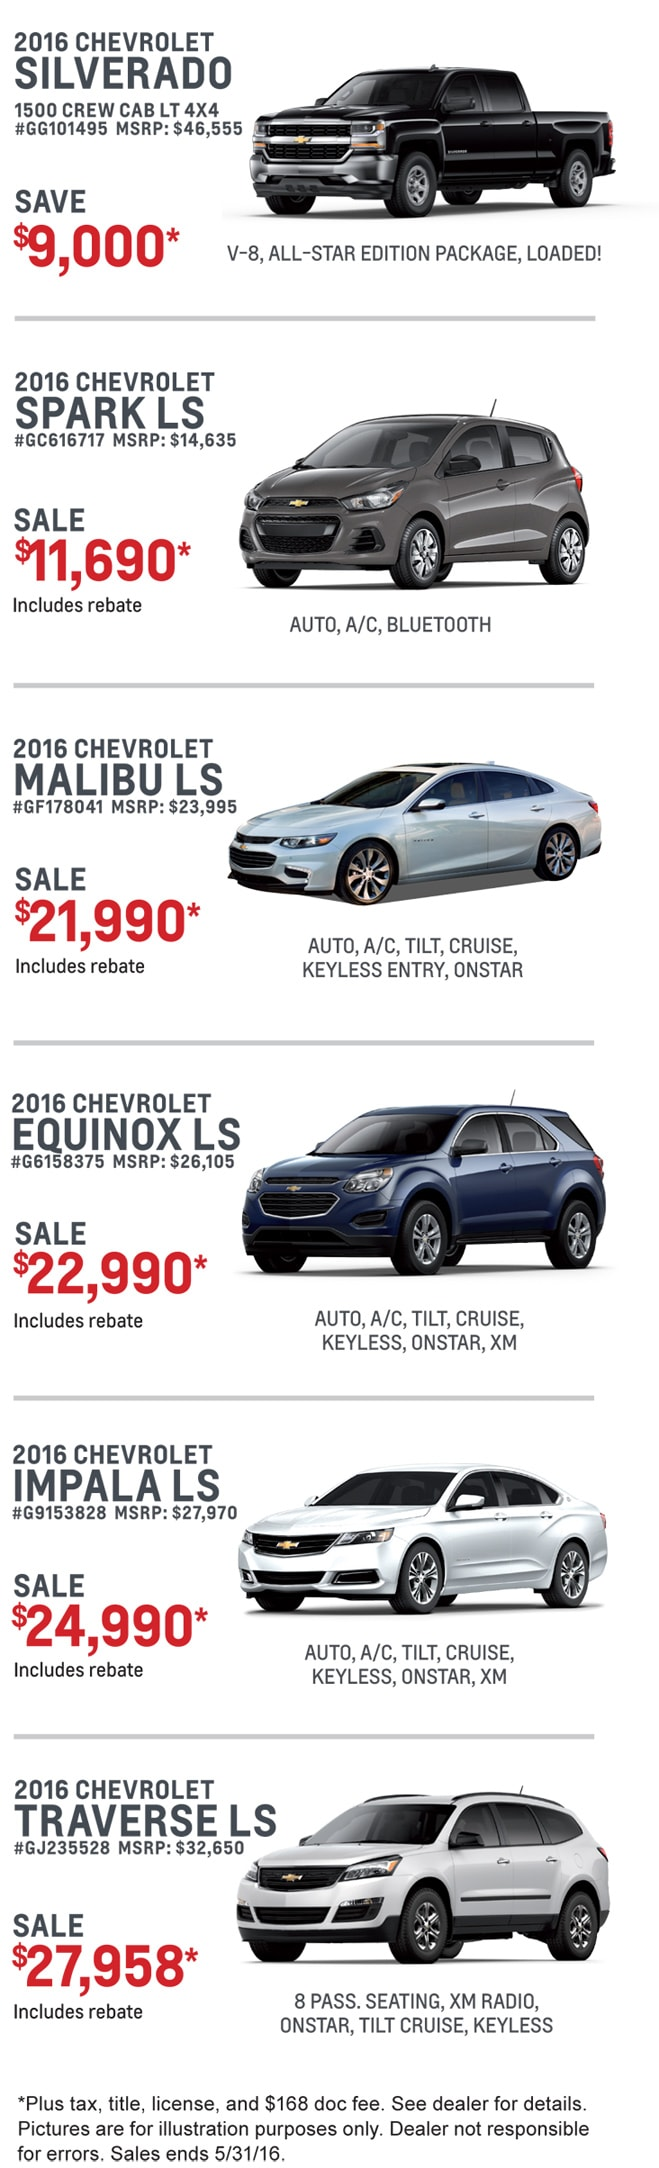 New Decatur Chevy Print Advertised Specials